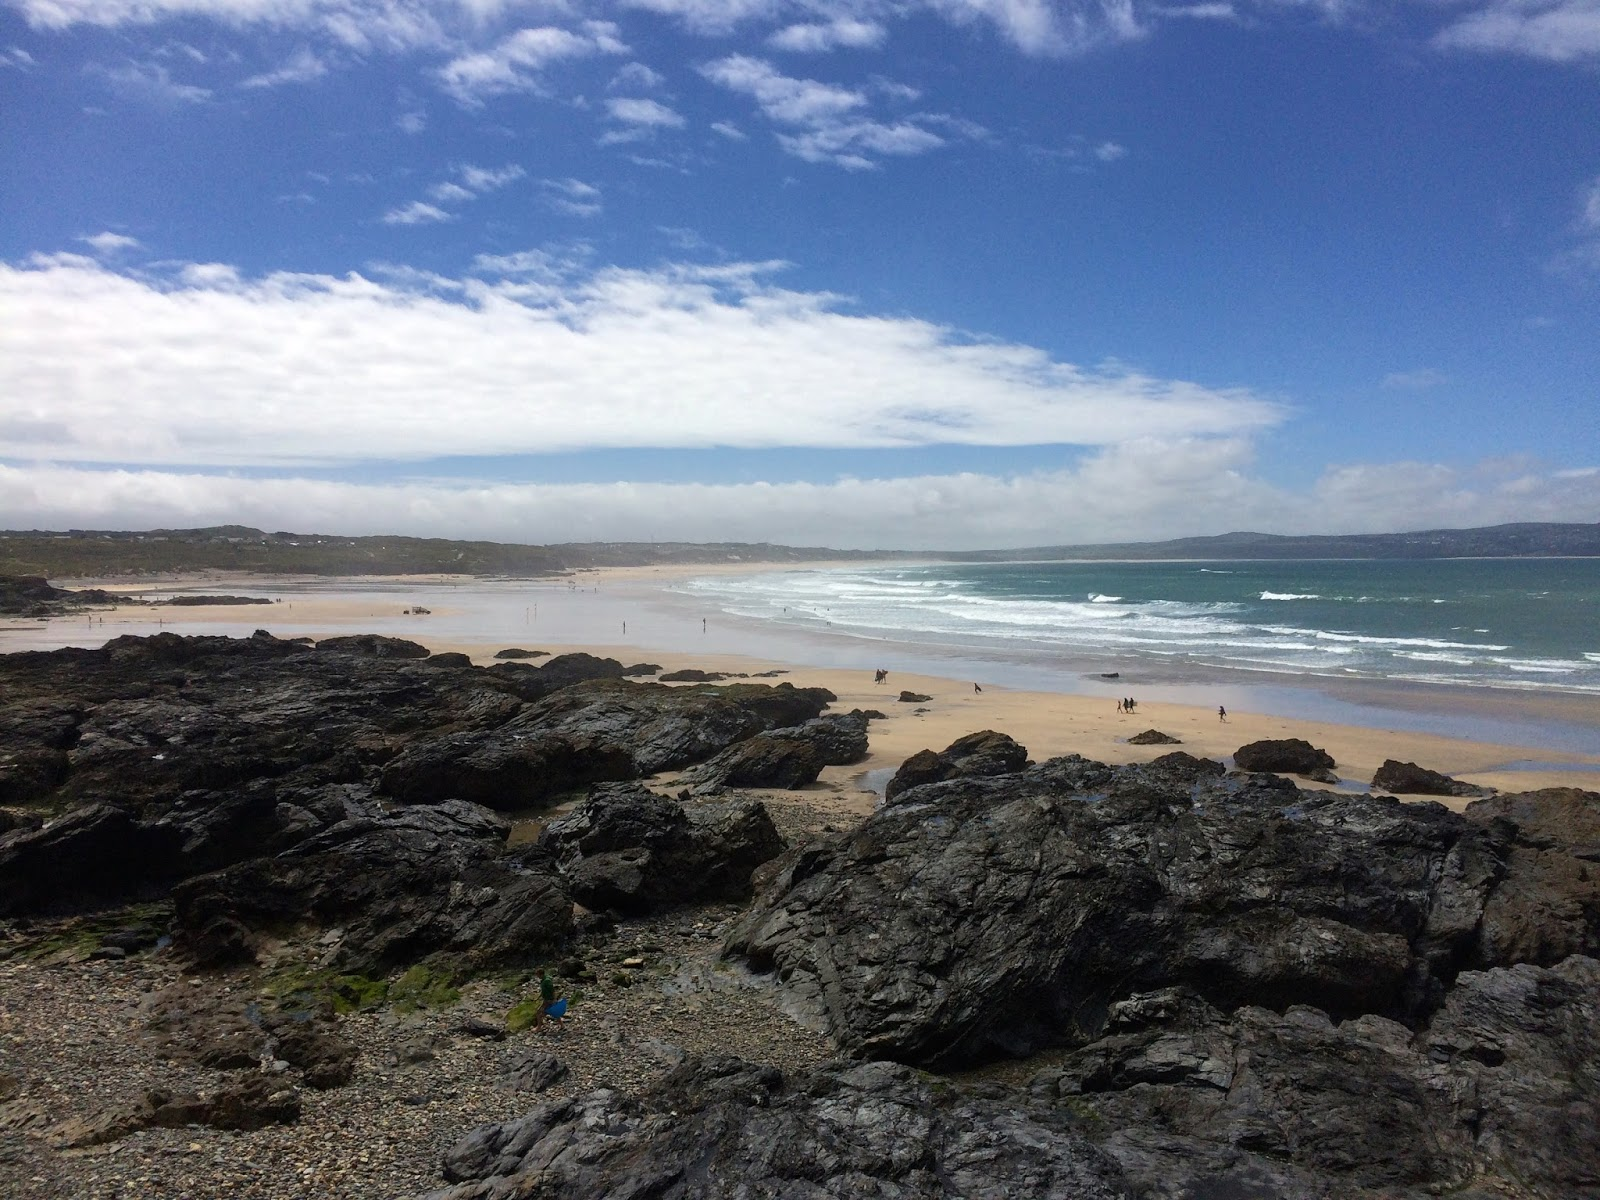 Godrevy beach, Things to do in Cornwall, lifestyle bloggers, travel bloggers